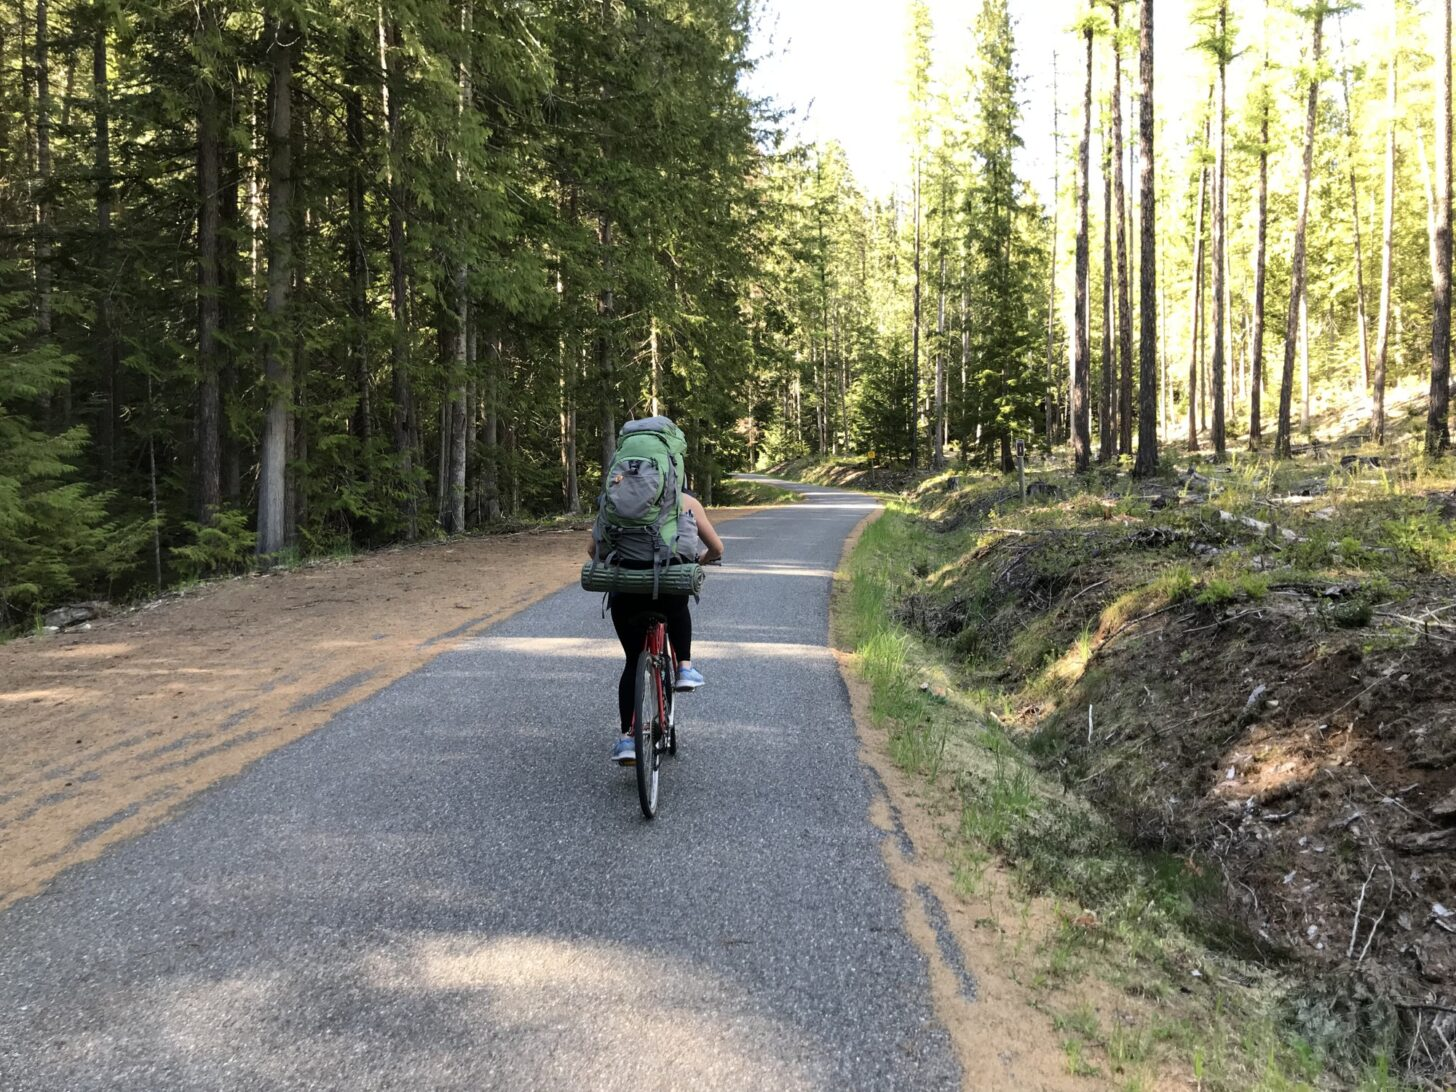 a woman rides a bicycle down a paved path while wearing a backpack